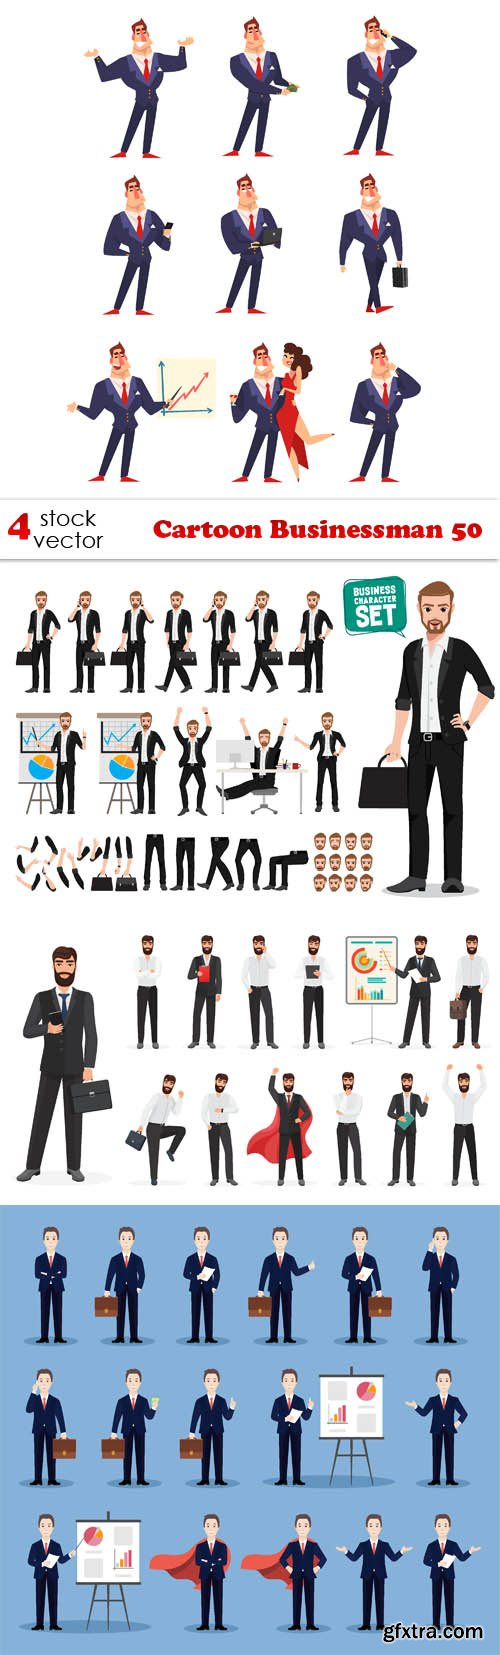 Vectors - Cartoon Businessman 50